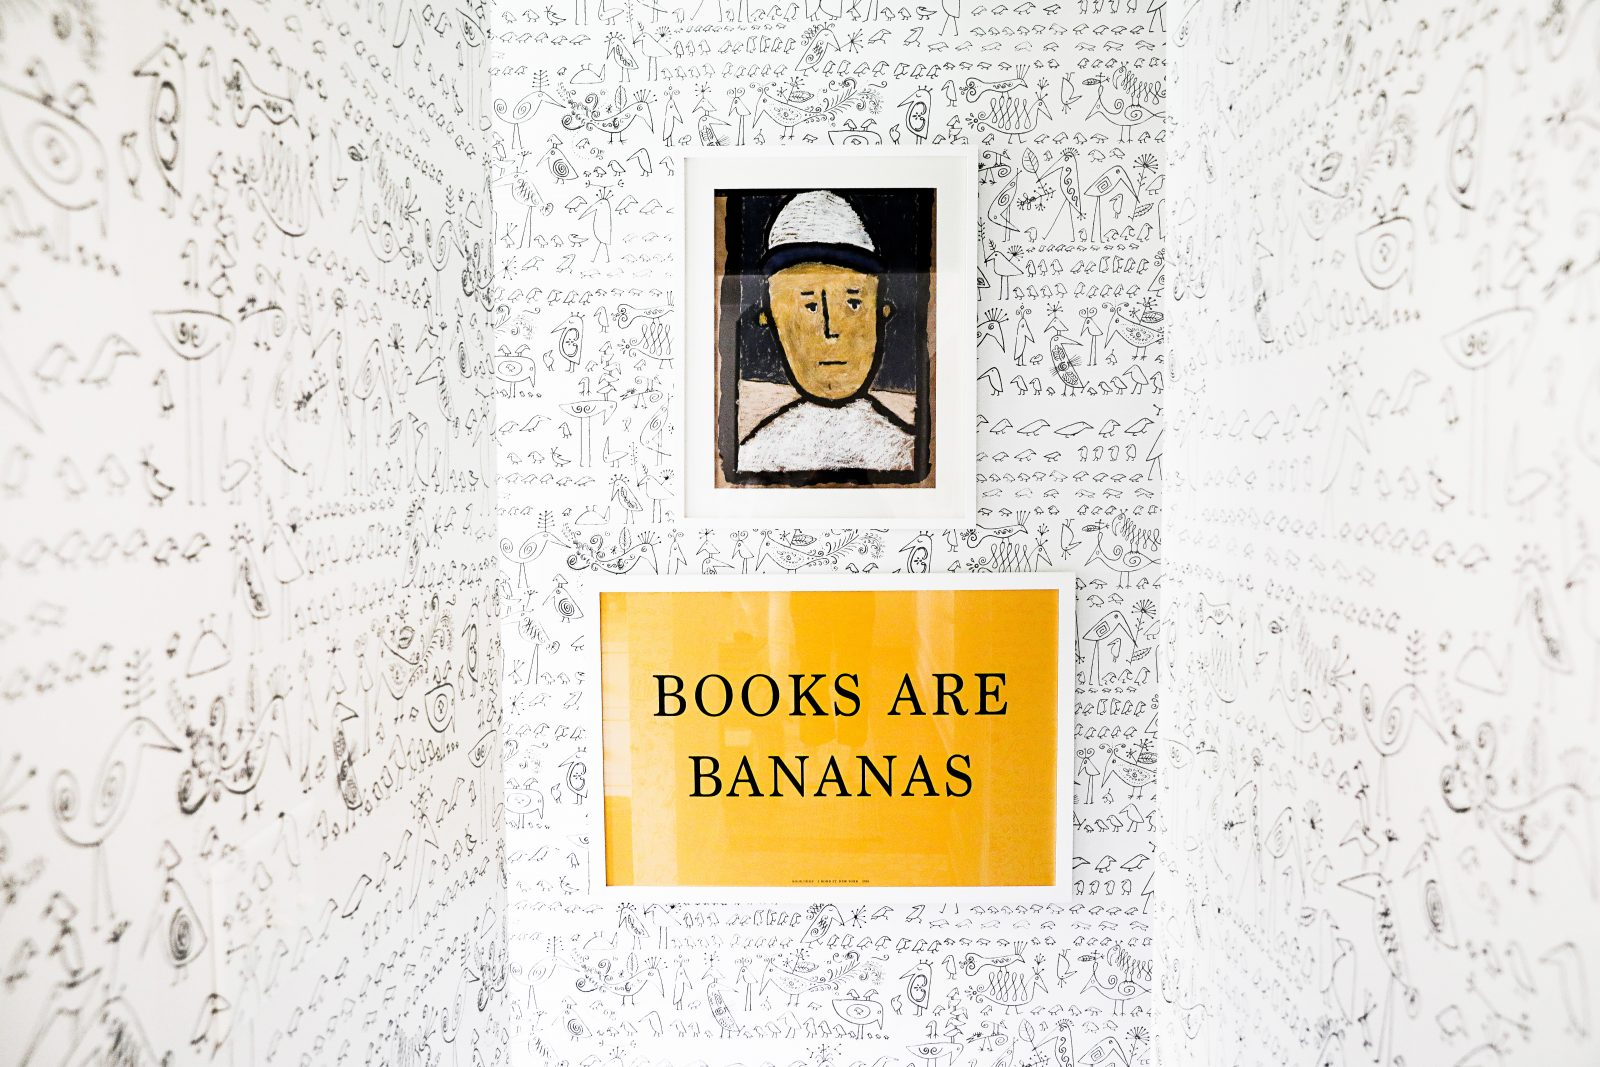 Books are Bananas sign